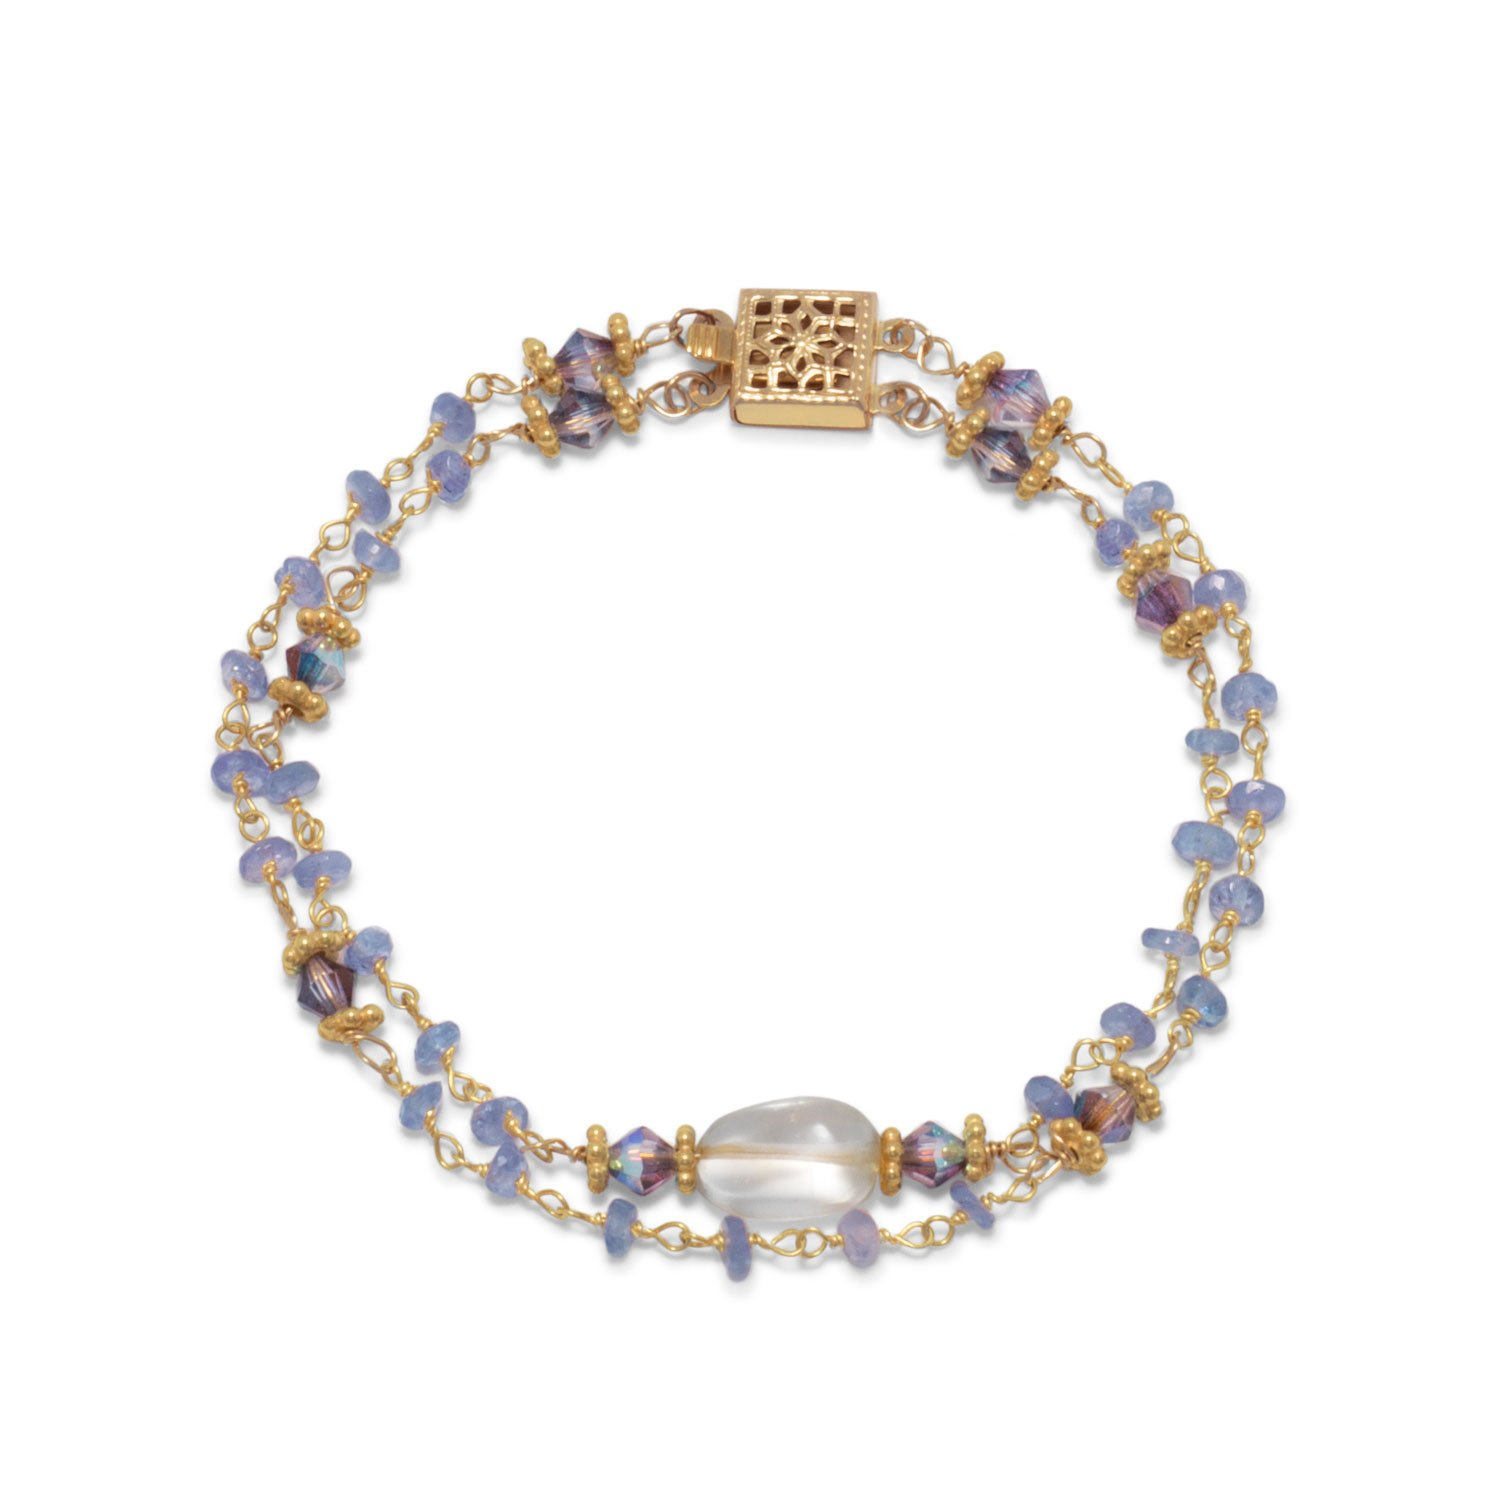 14 Karat Gold Plated Double Strand Tanzanite and Citrine Bracelet